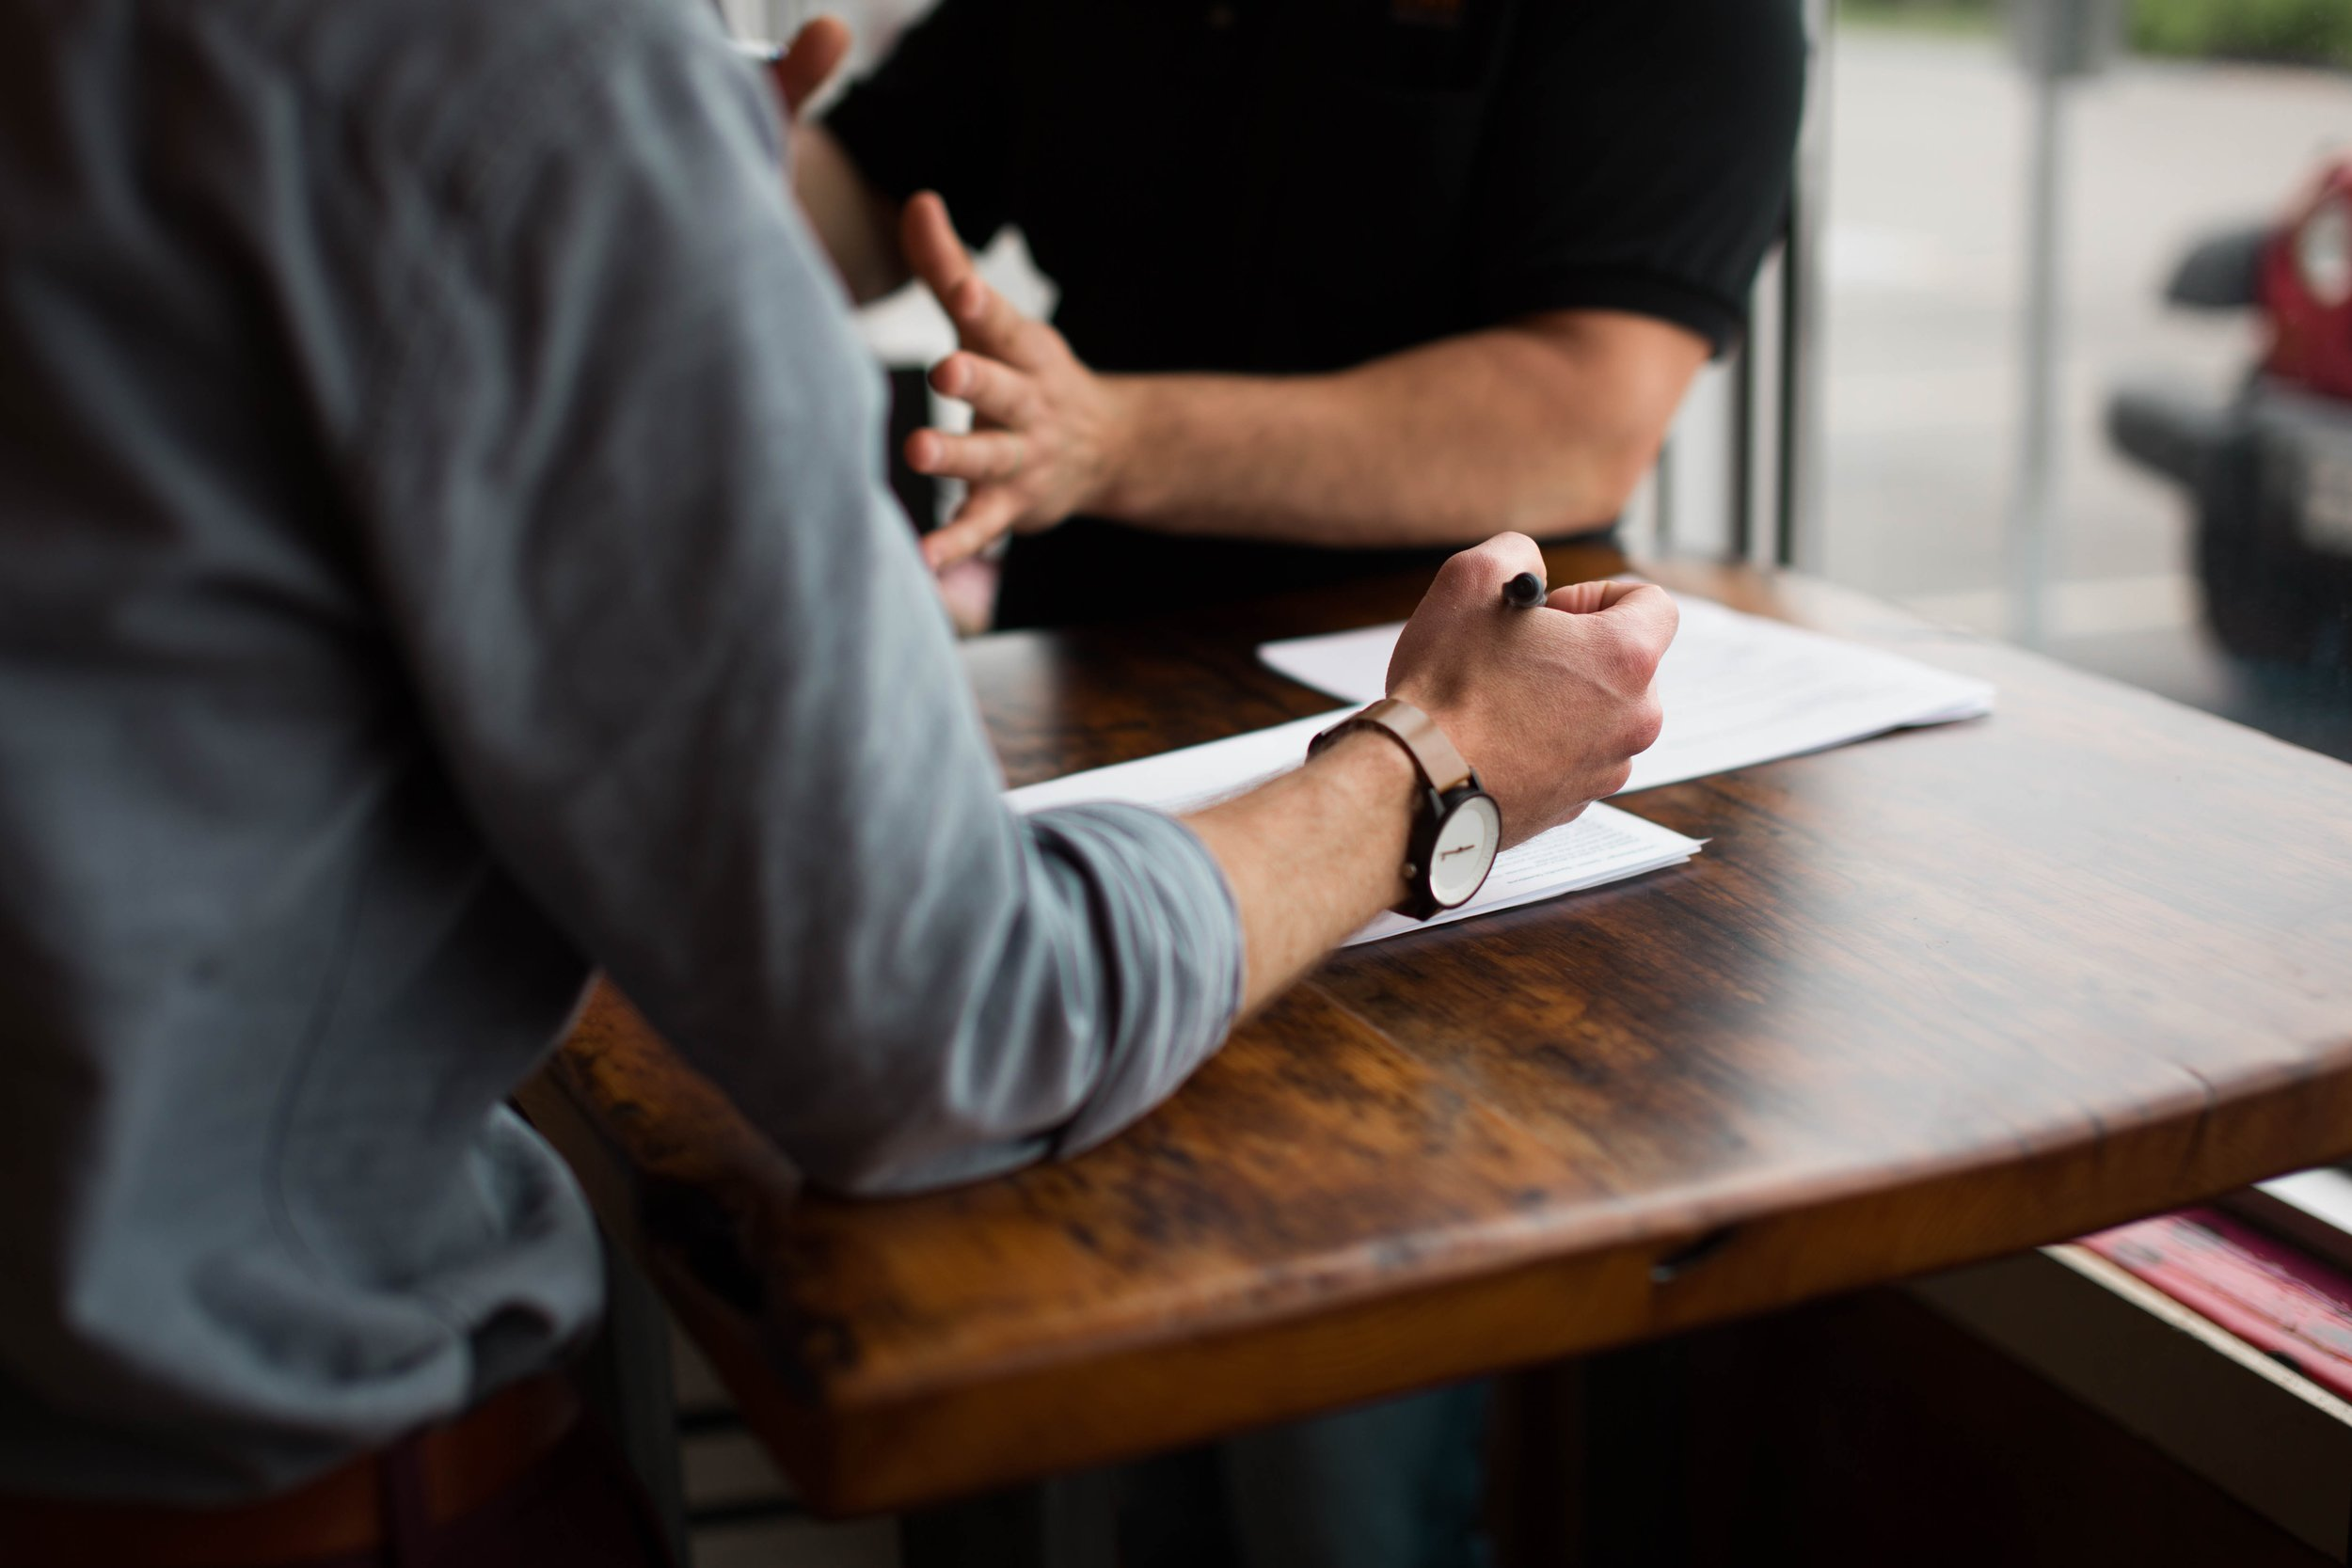 Business Litigation - We are commercial litigators who take pride in our areas of practice. We value our clients' input and vigorously litigate disputes, while always keeping in mind that the ultimate goal is a favorable outcome for our client.